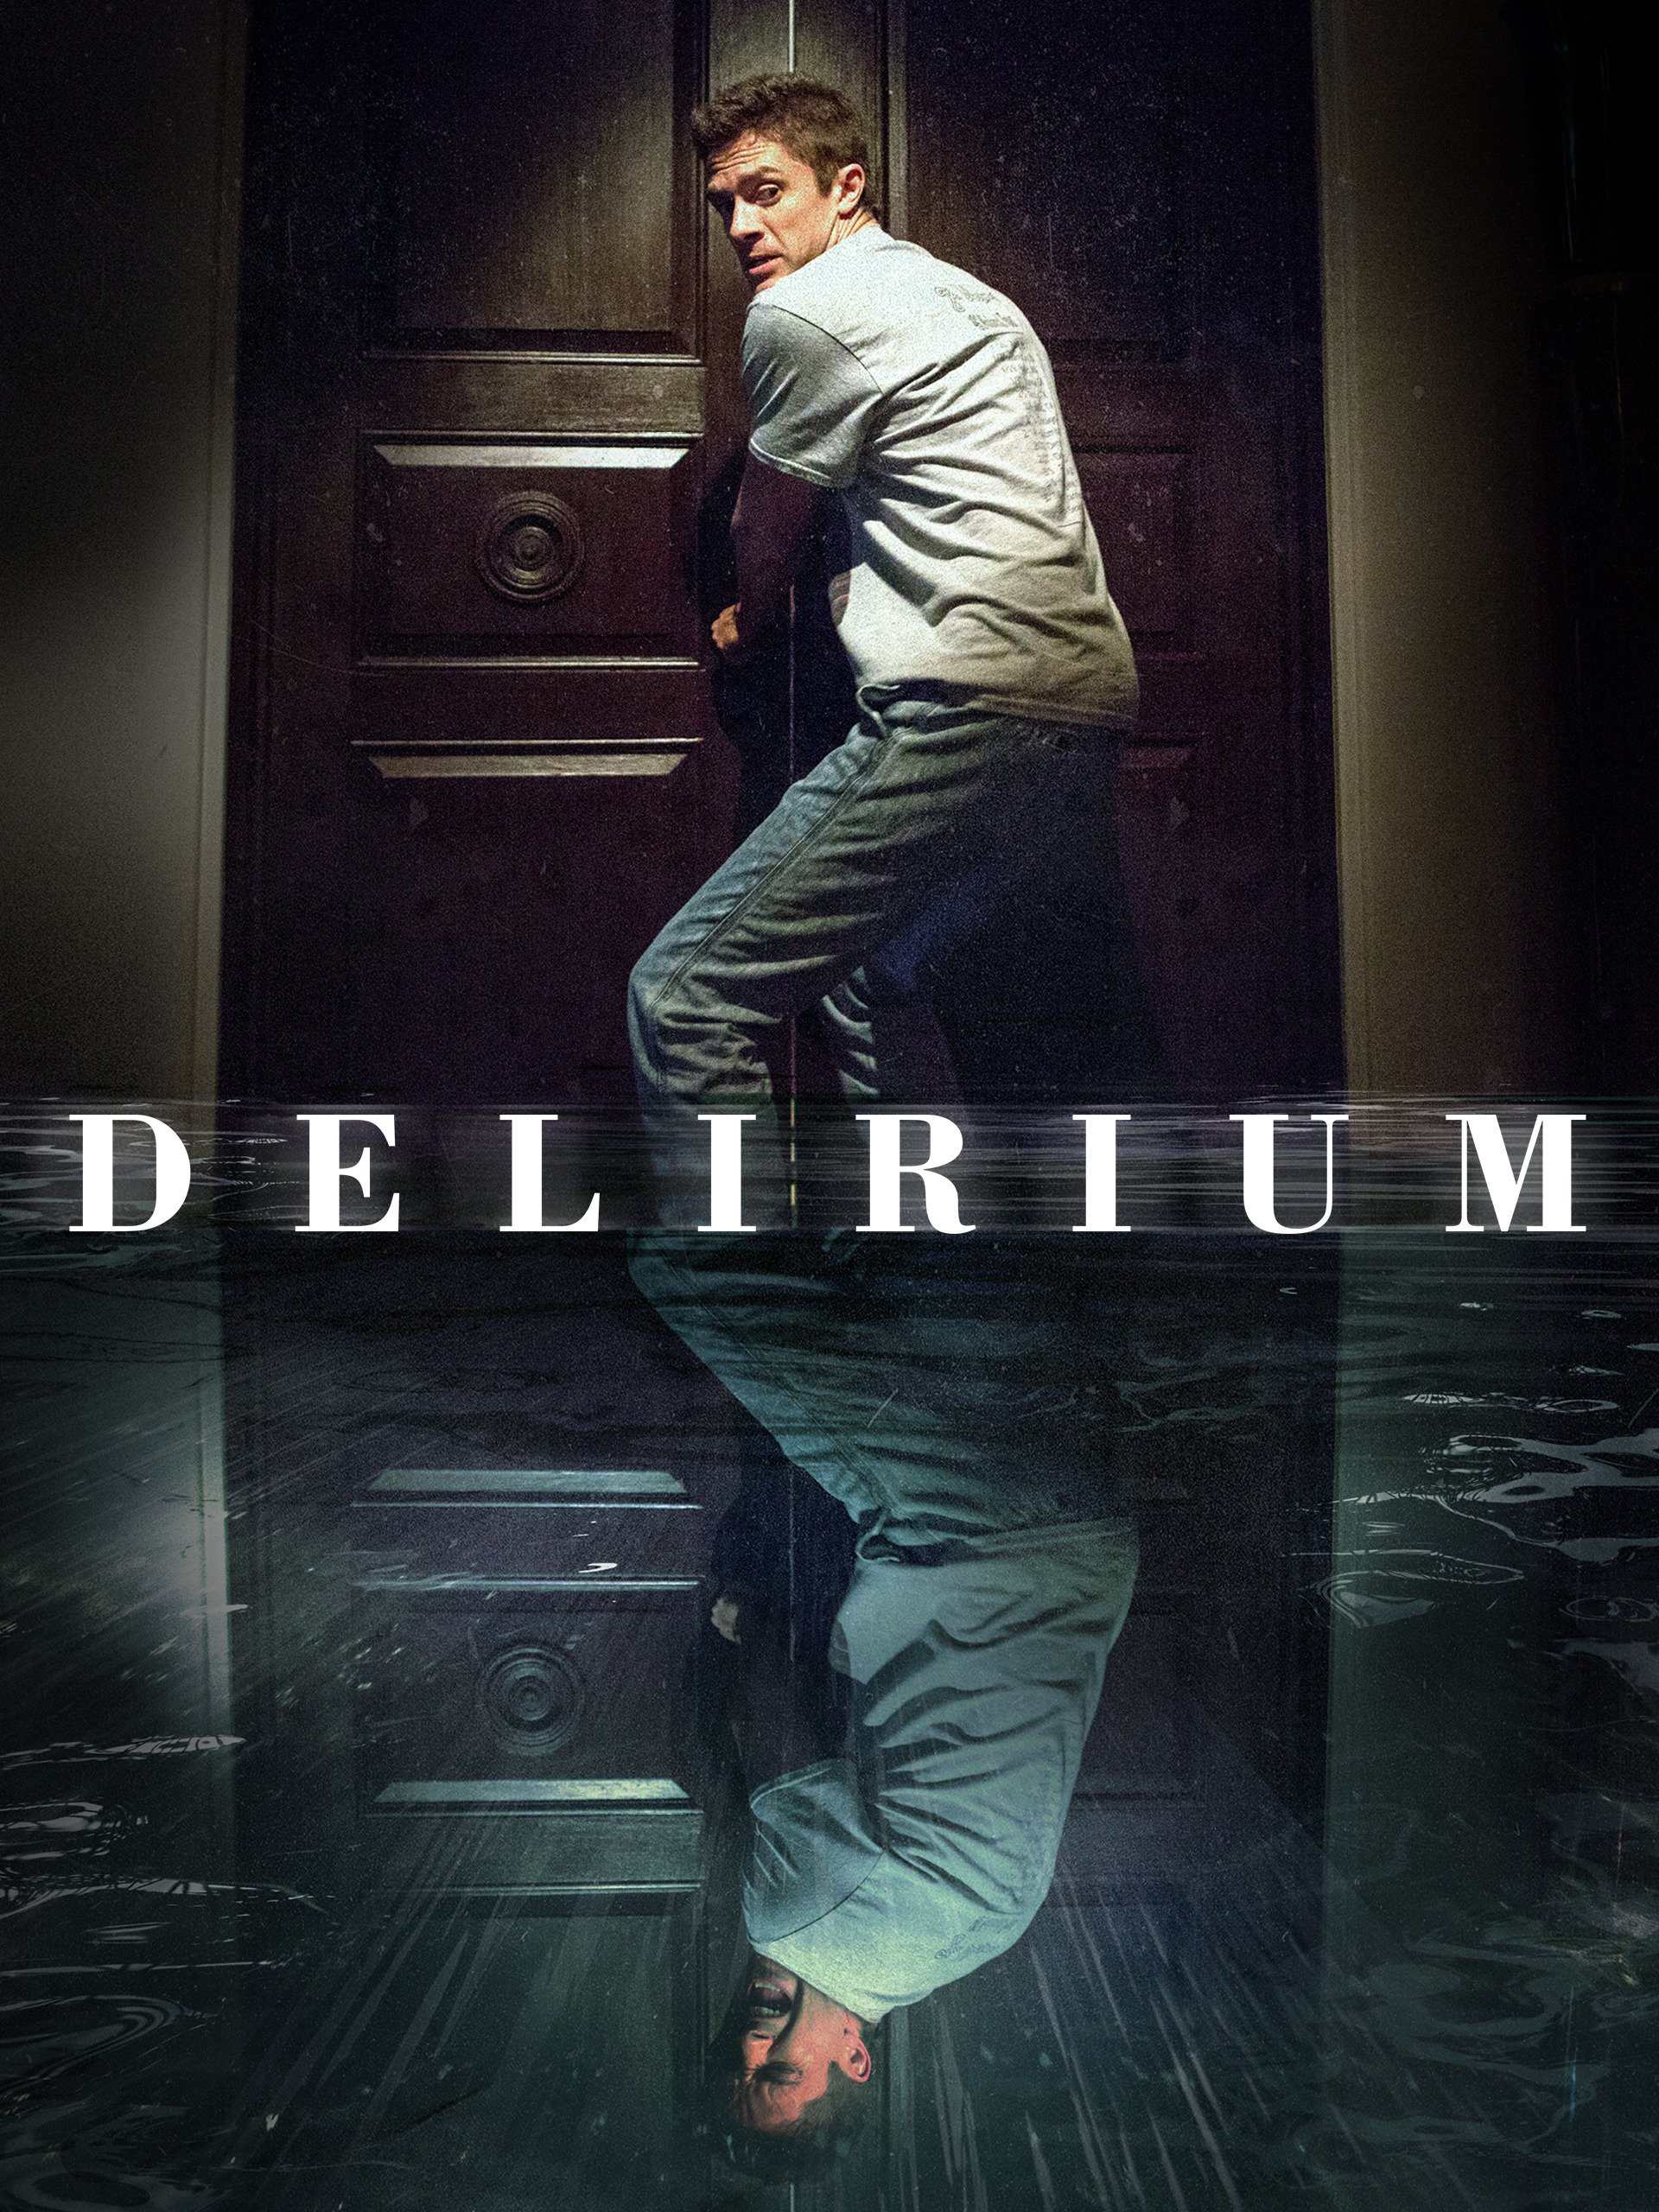 Check Out DeliriumProducts On Amazon!